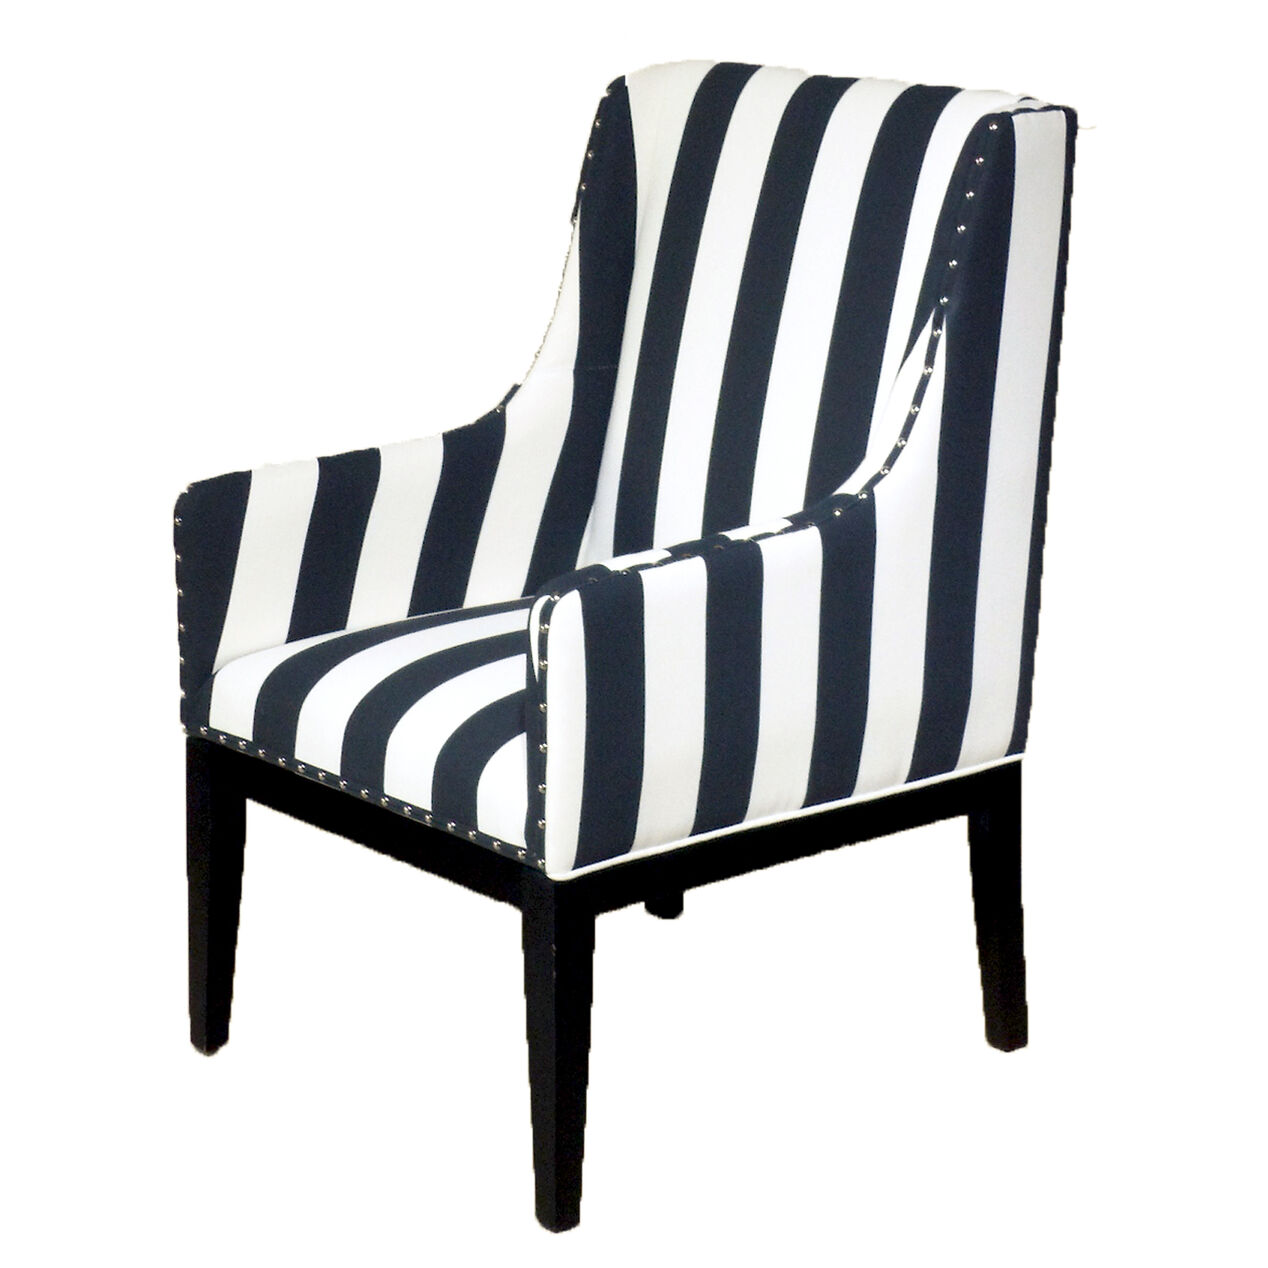 Black and white striped sargon chair at home